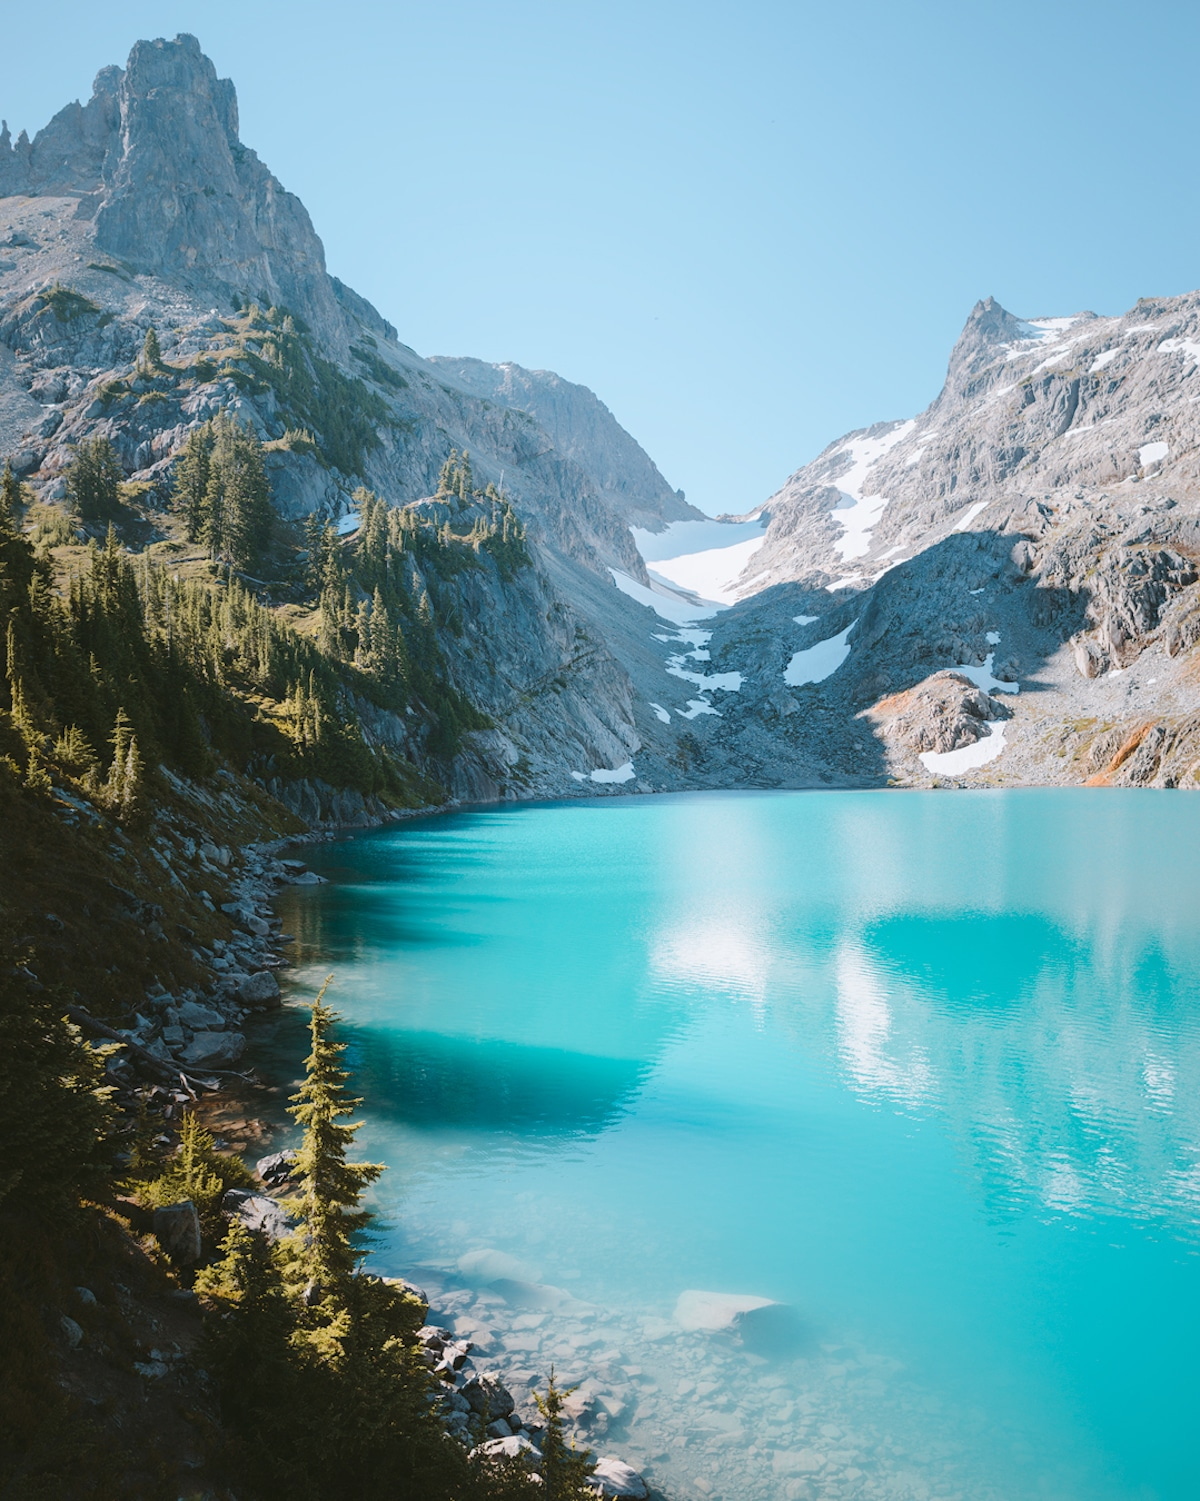 Landscape Photography by Nathaniel Wise